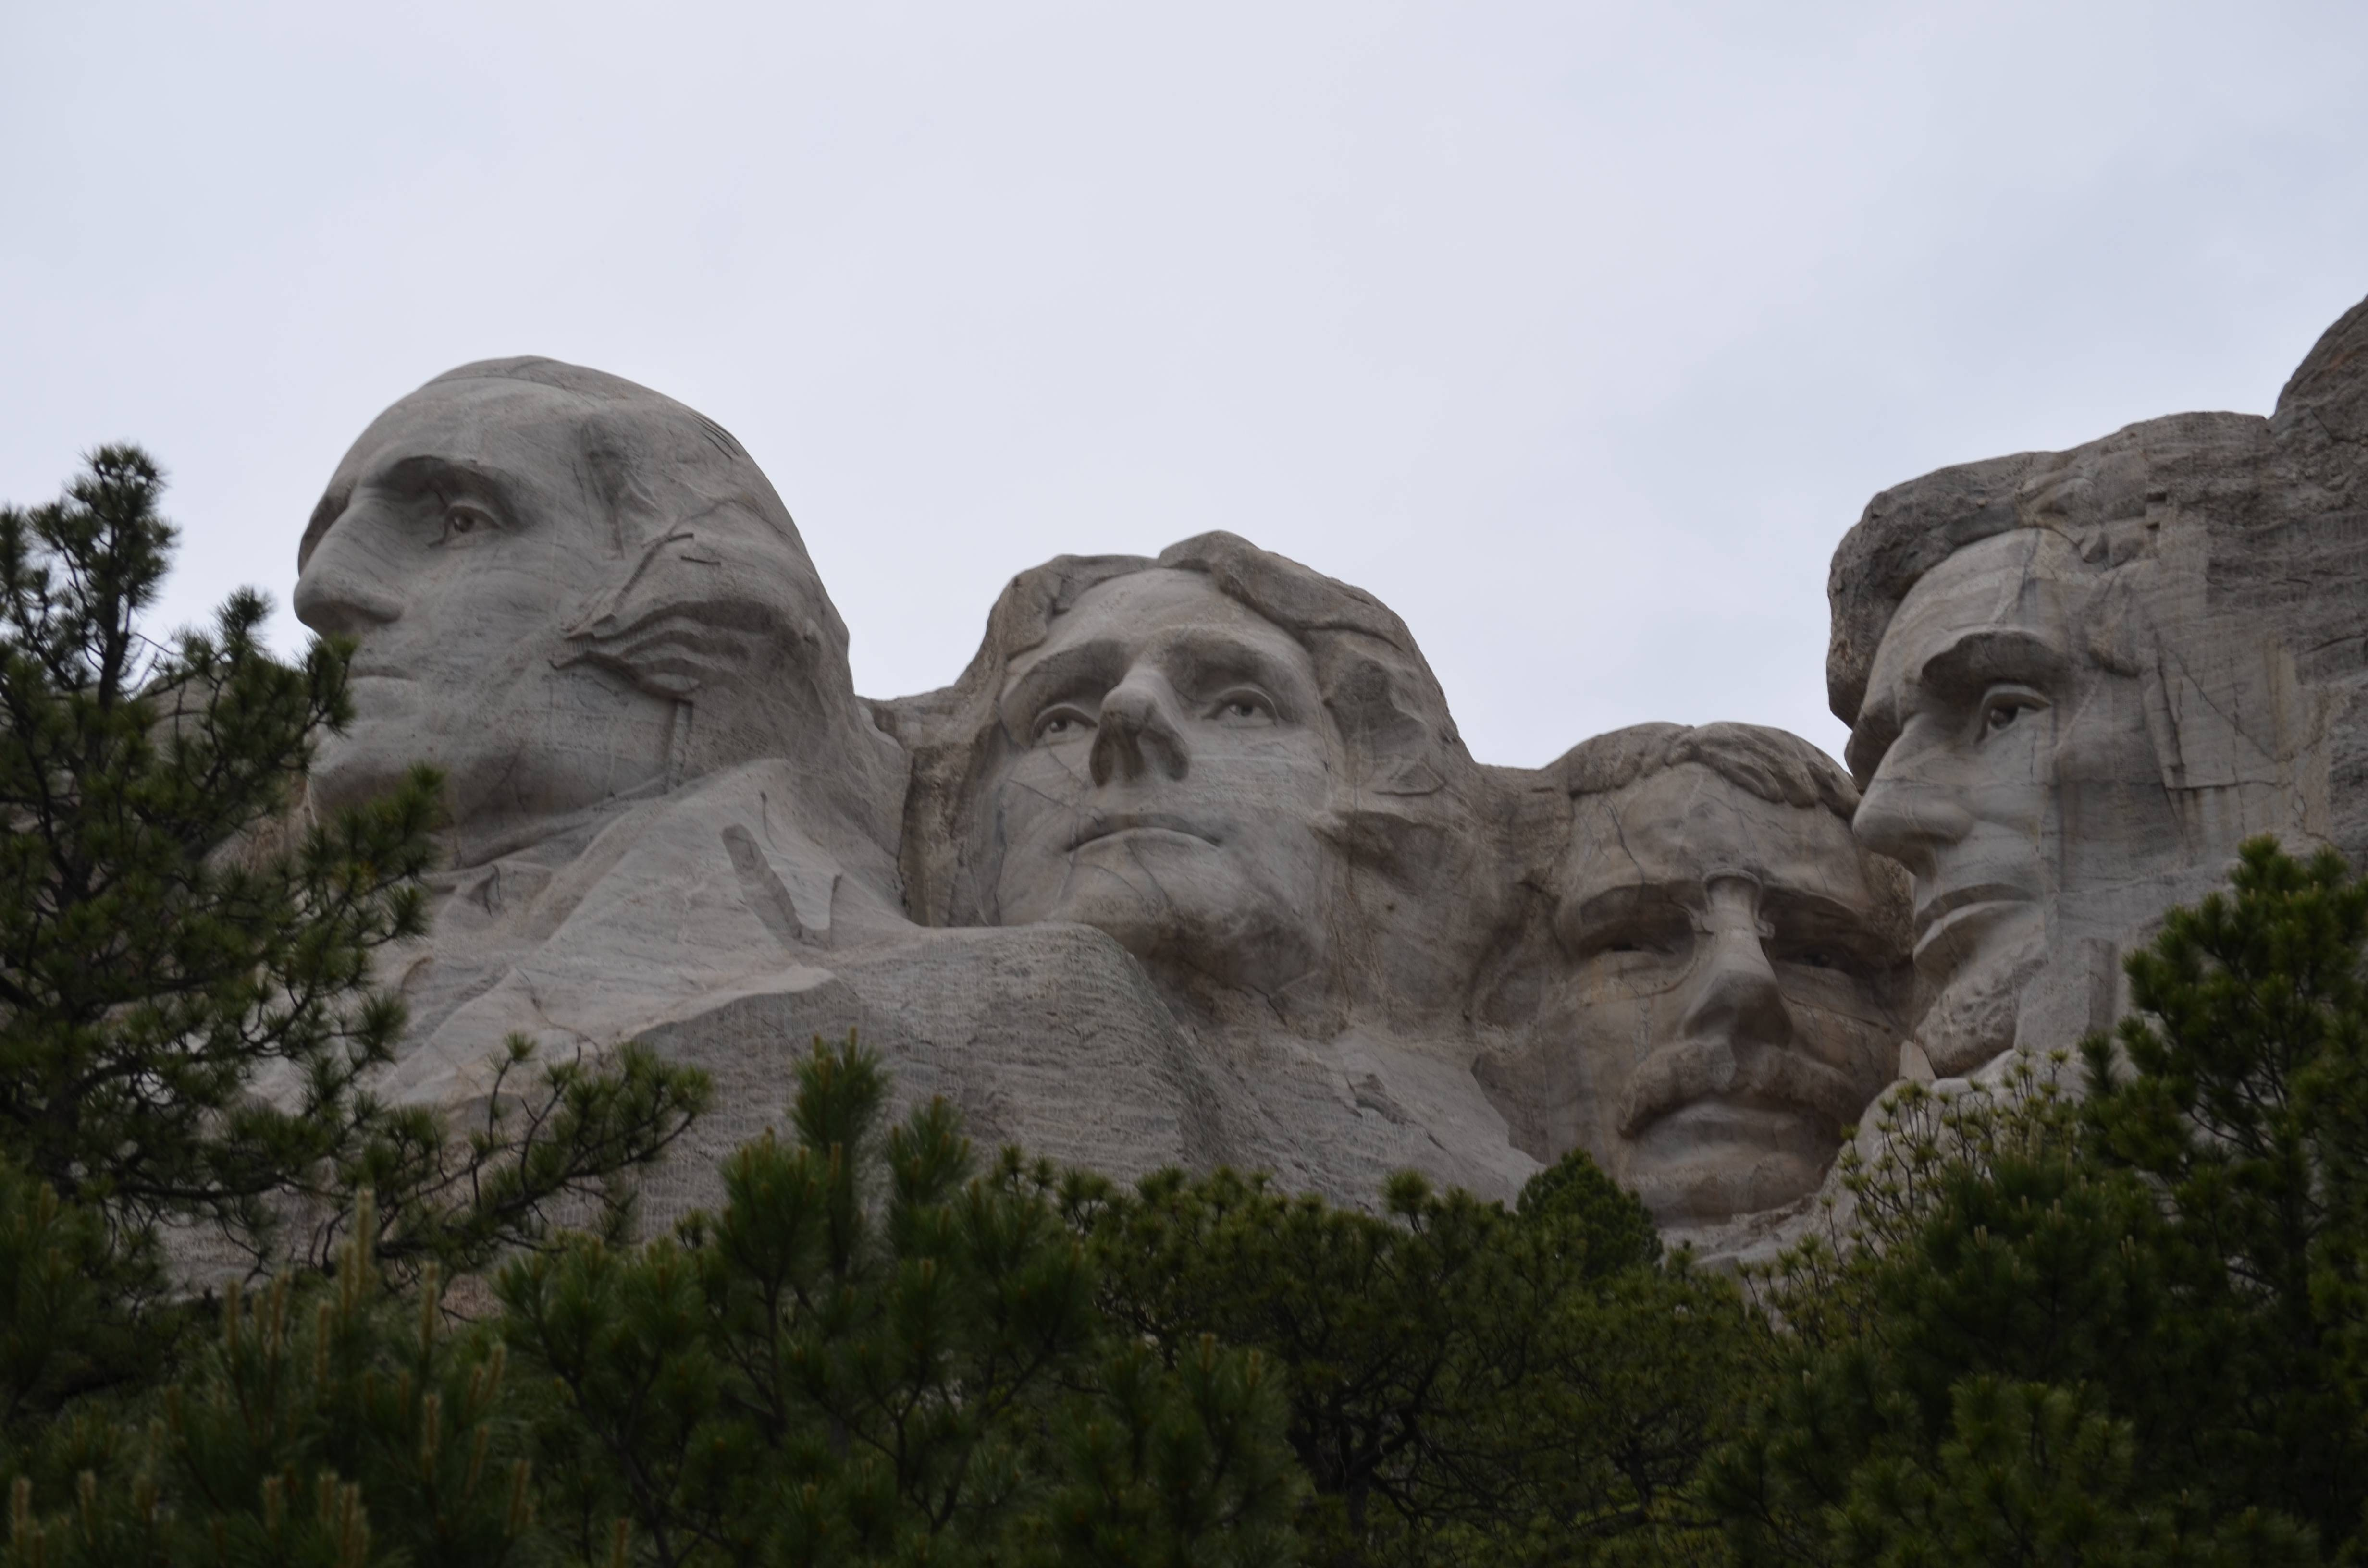 Photo 3: Mount Rushmore National Memorial